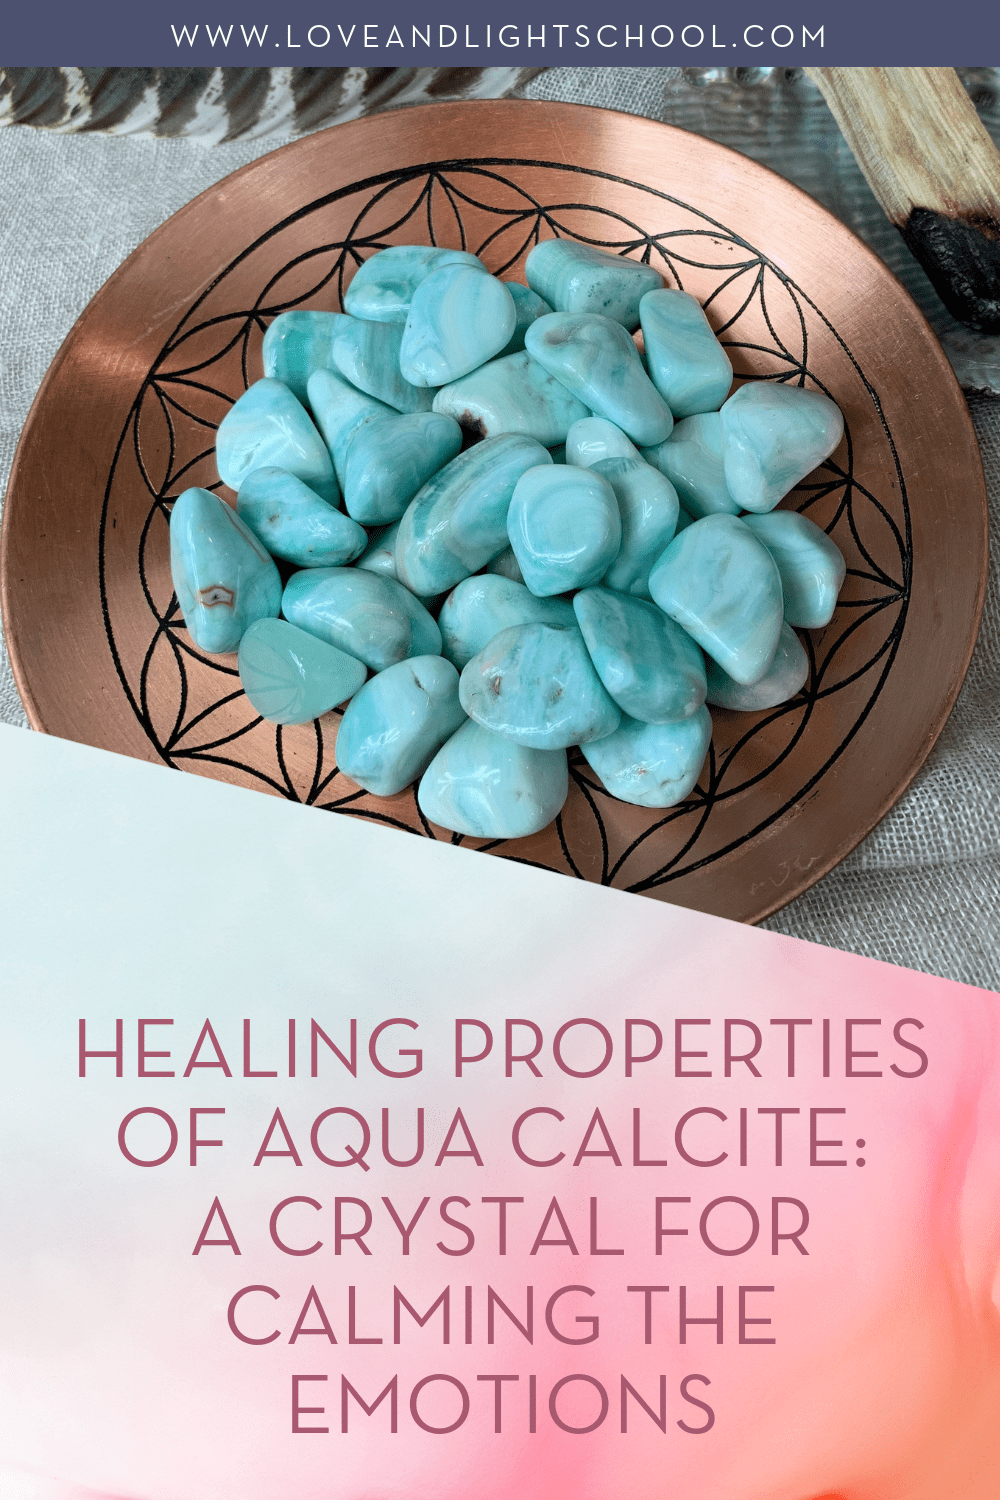 Healing Properties of Aqua Calcite: A Crystal for Calming the Emotions